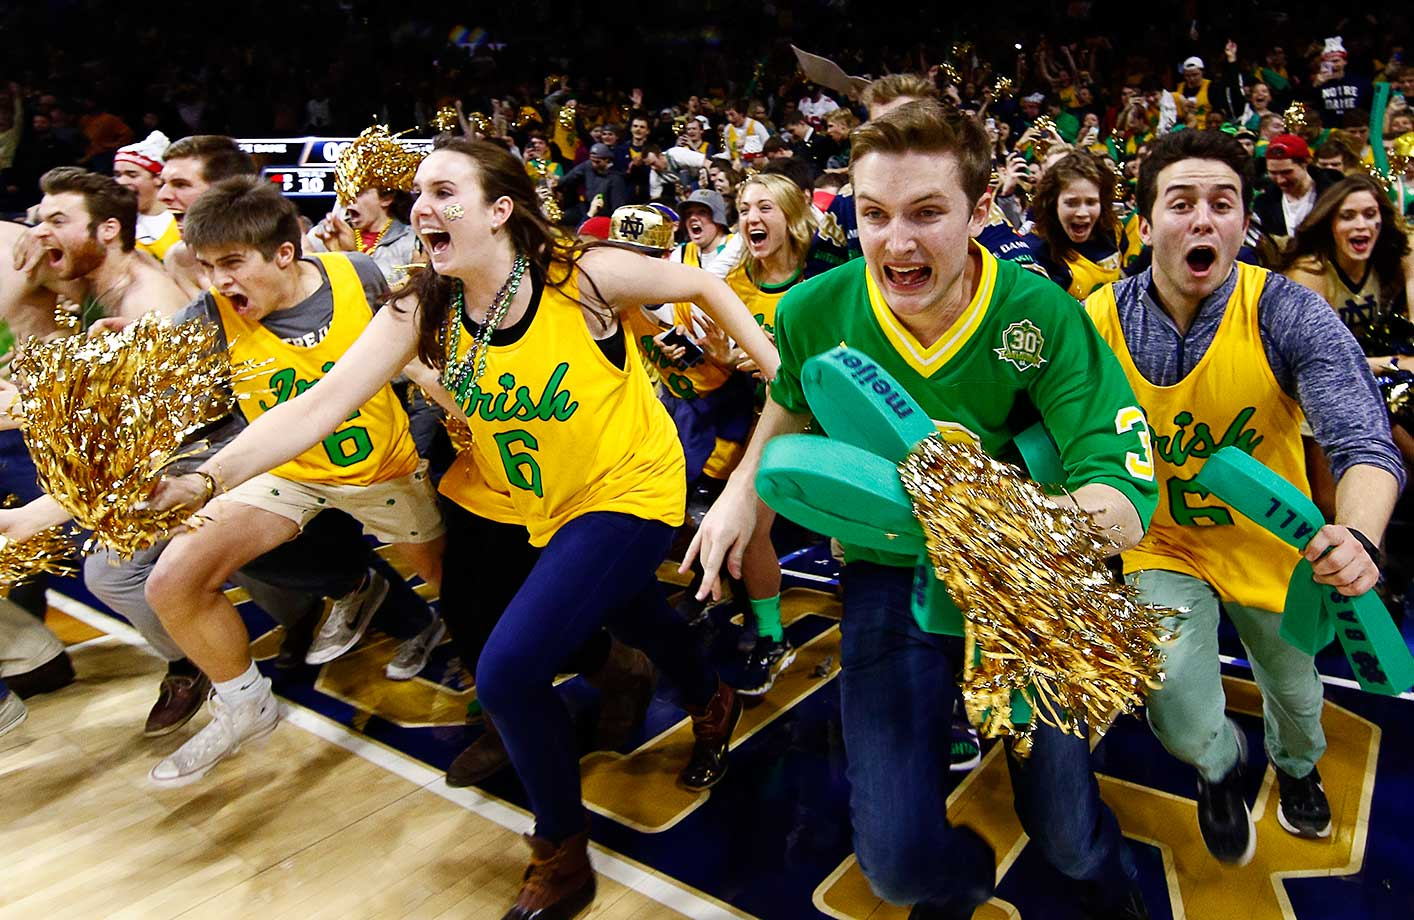 Notre Dame students rush the court following their team's 80-76 win over No. 2 North Carolina.